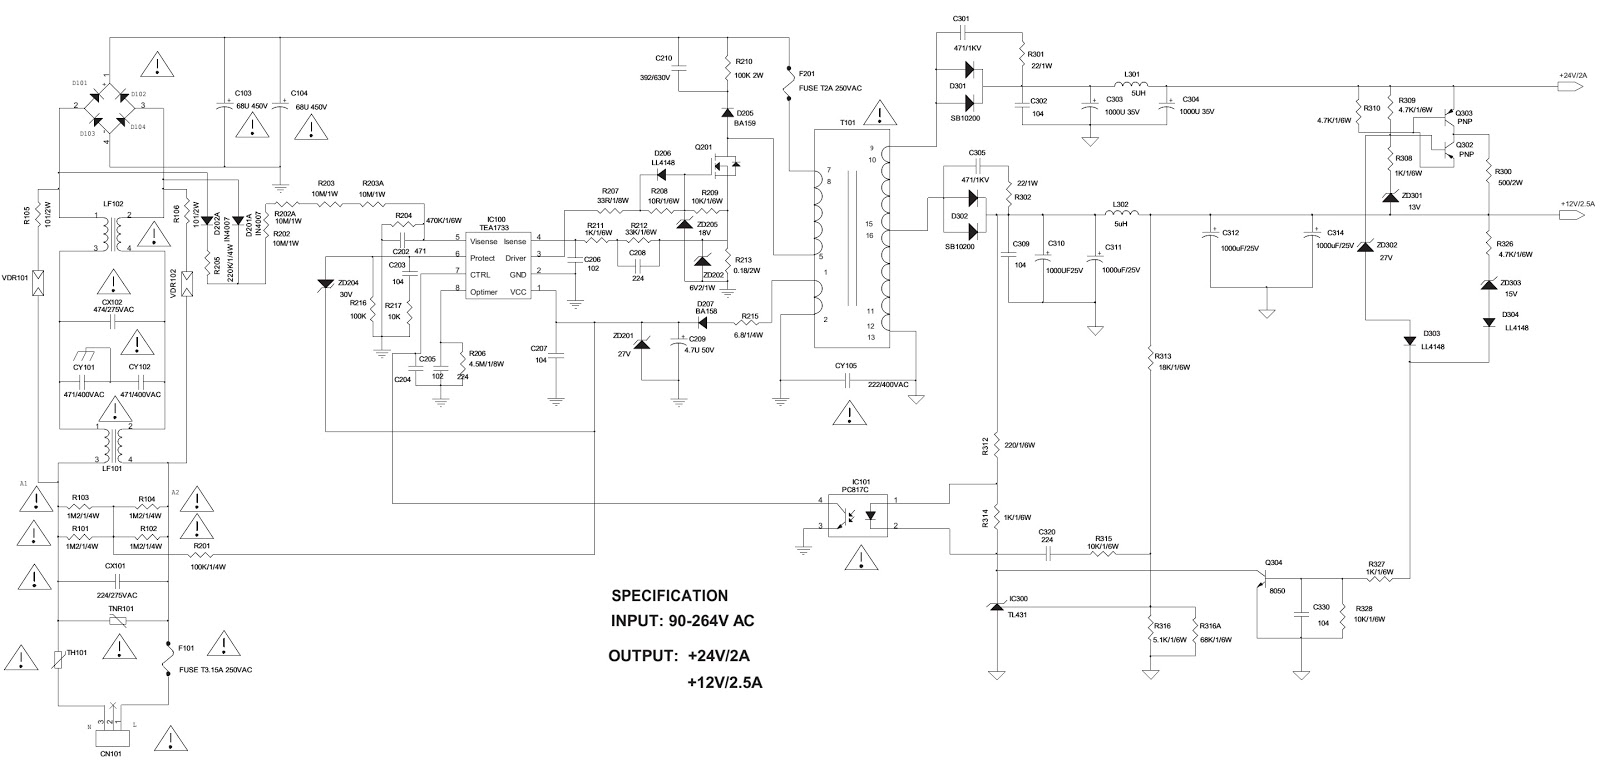 FIG 1 toshiba le3273 toshiba le3973 led lcd tv smps circuit diagram toshiba motor wiring diagram at creativeand.co